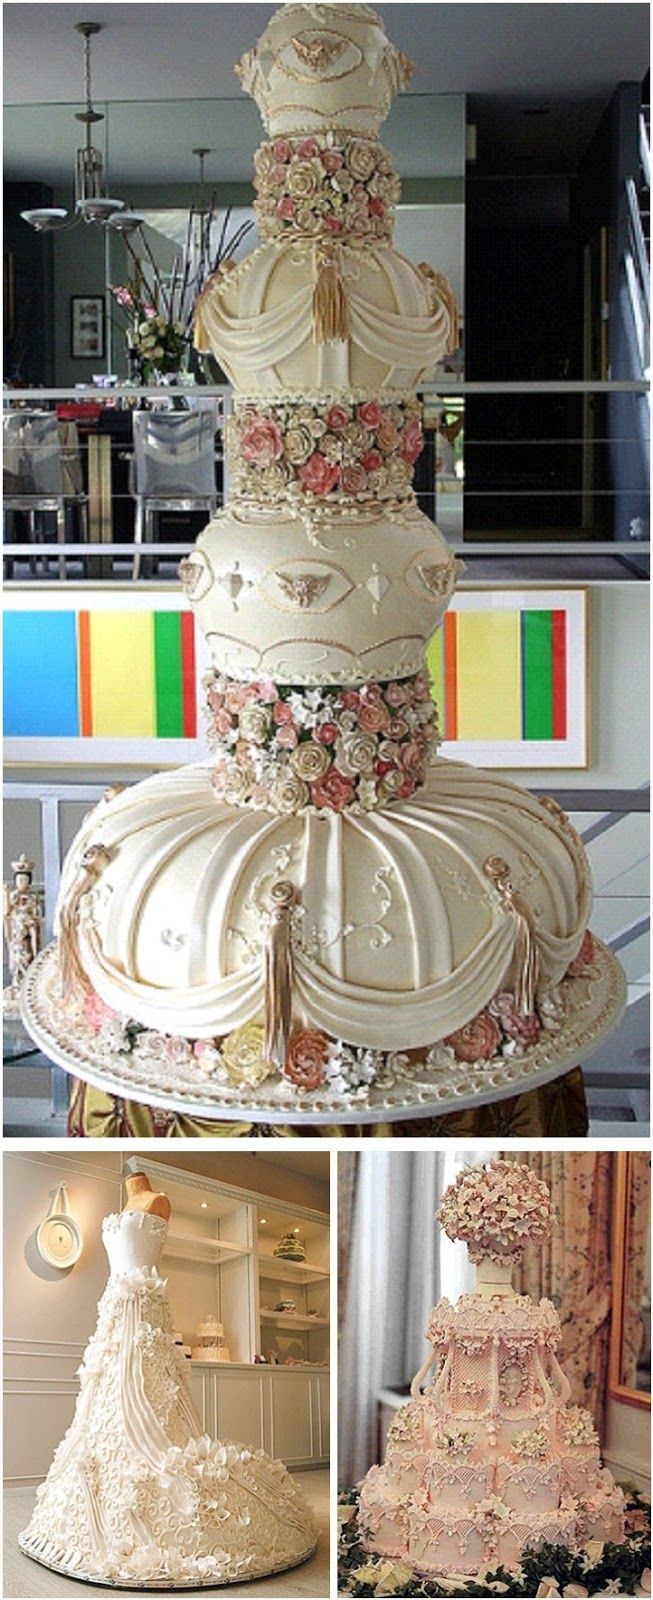 What do you think about these amazing cakes Ladies???